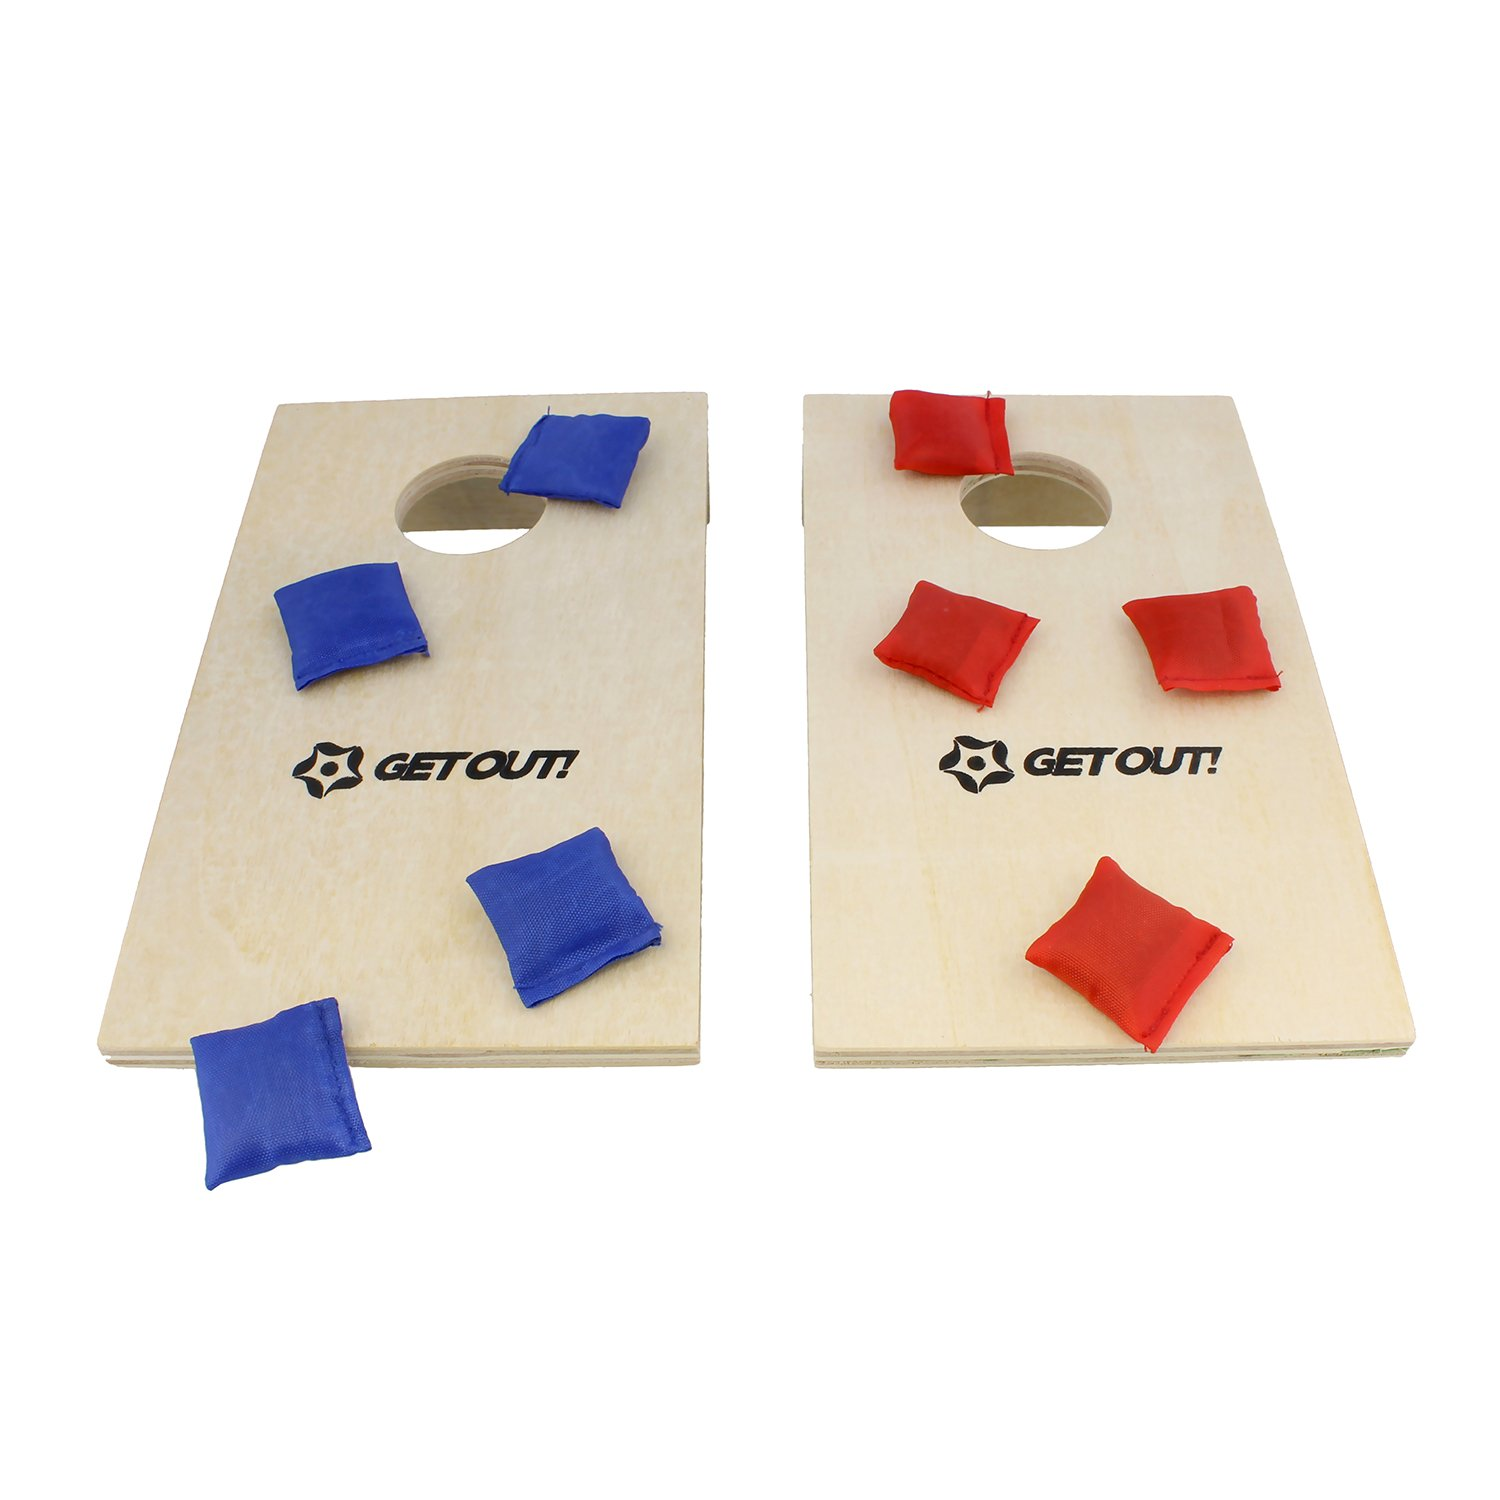 Get Out! Mini Corn Hole Set, Bean Bag Toss Game – Tabletop Cornhole, Kids Bean Bag Toss Game, Indoor Cornhole Game